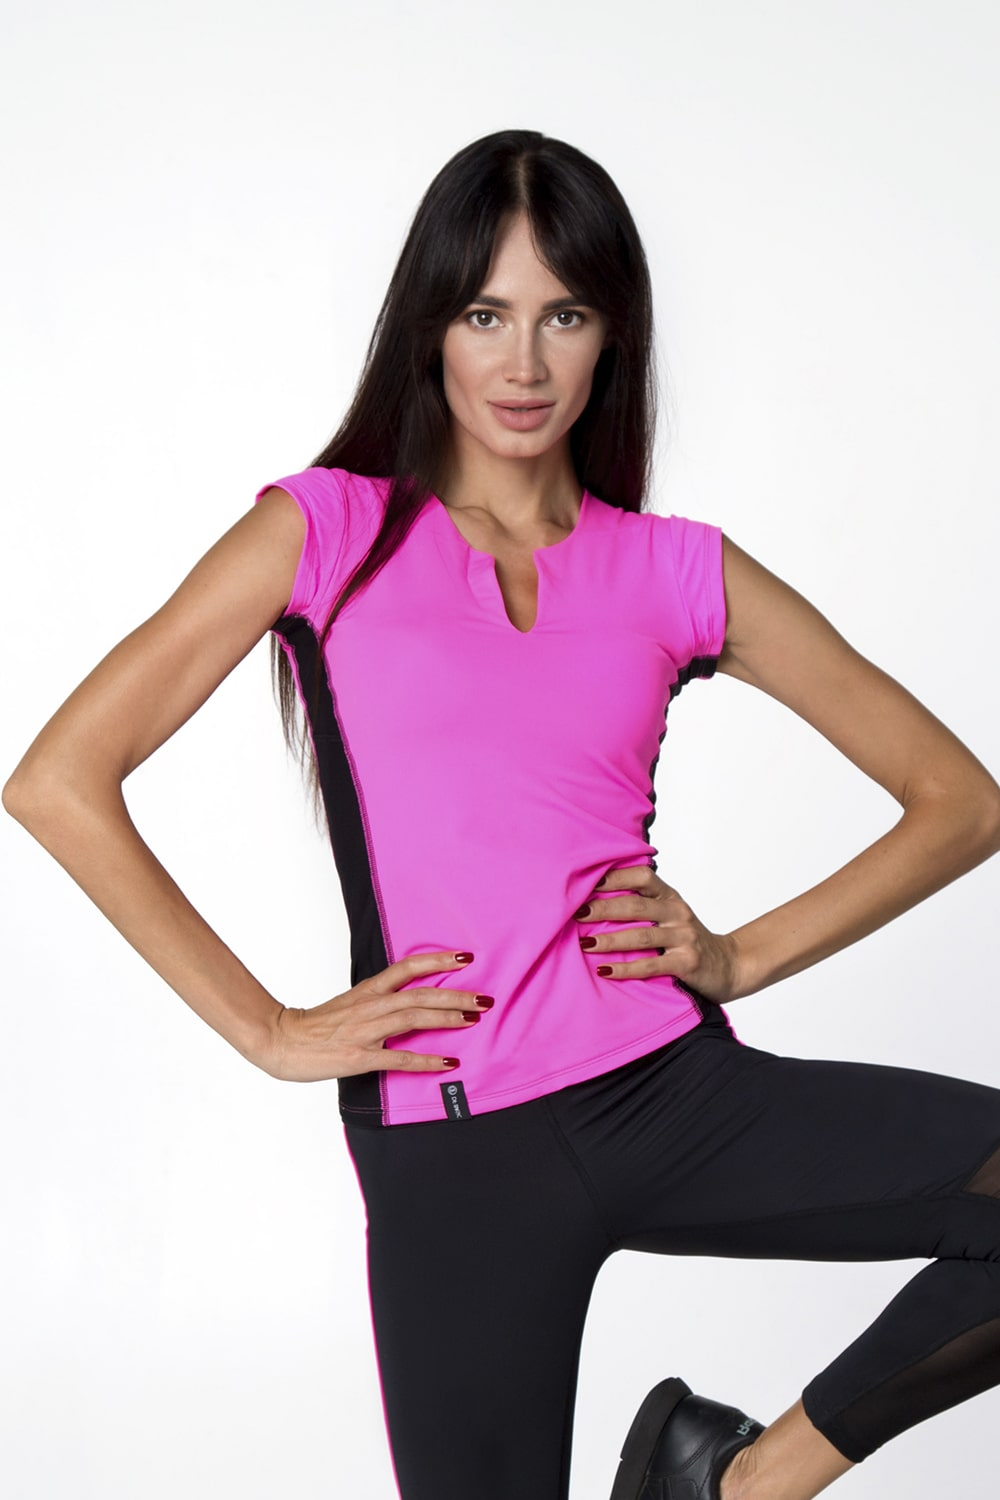 T-SHIRT PINK - Designed for Fitness